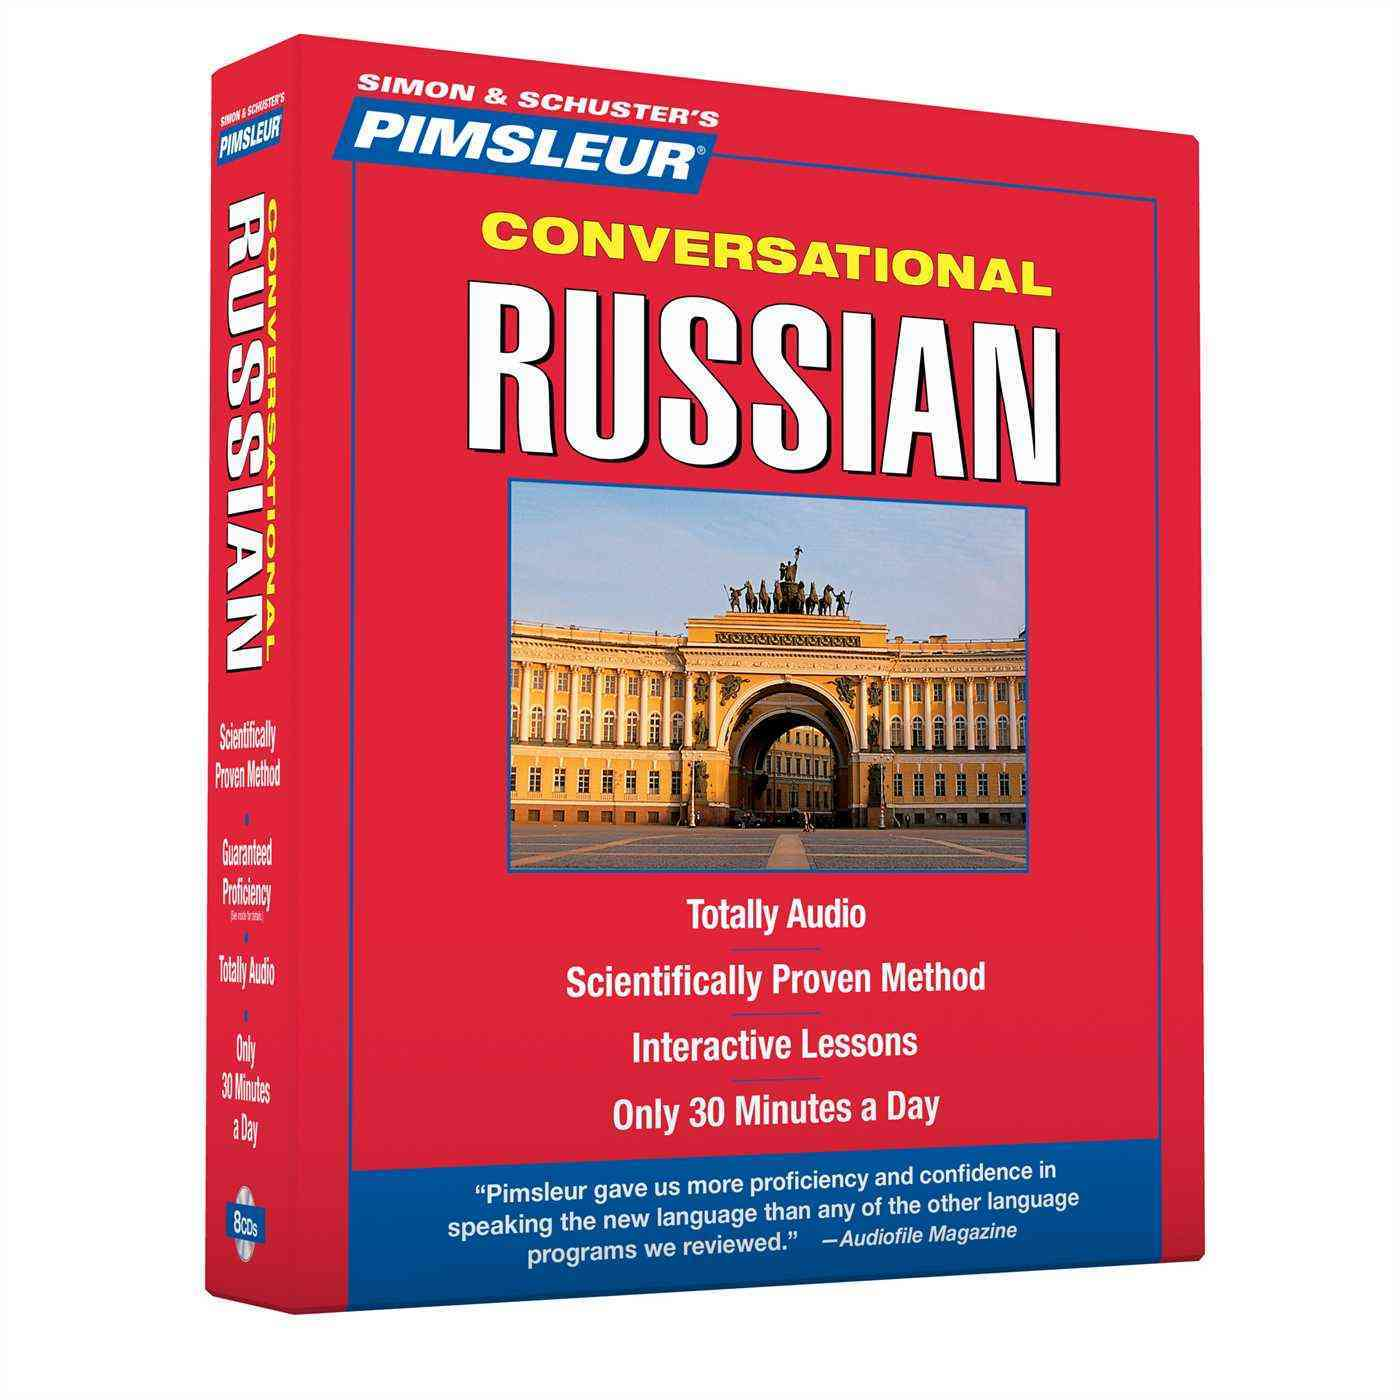 Pimsleur Conversational Russian (CD-Audio)